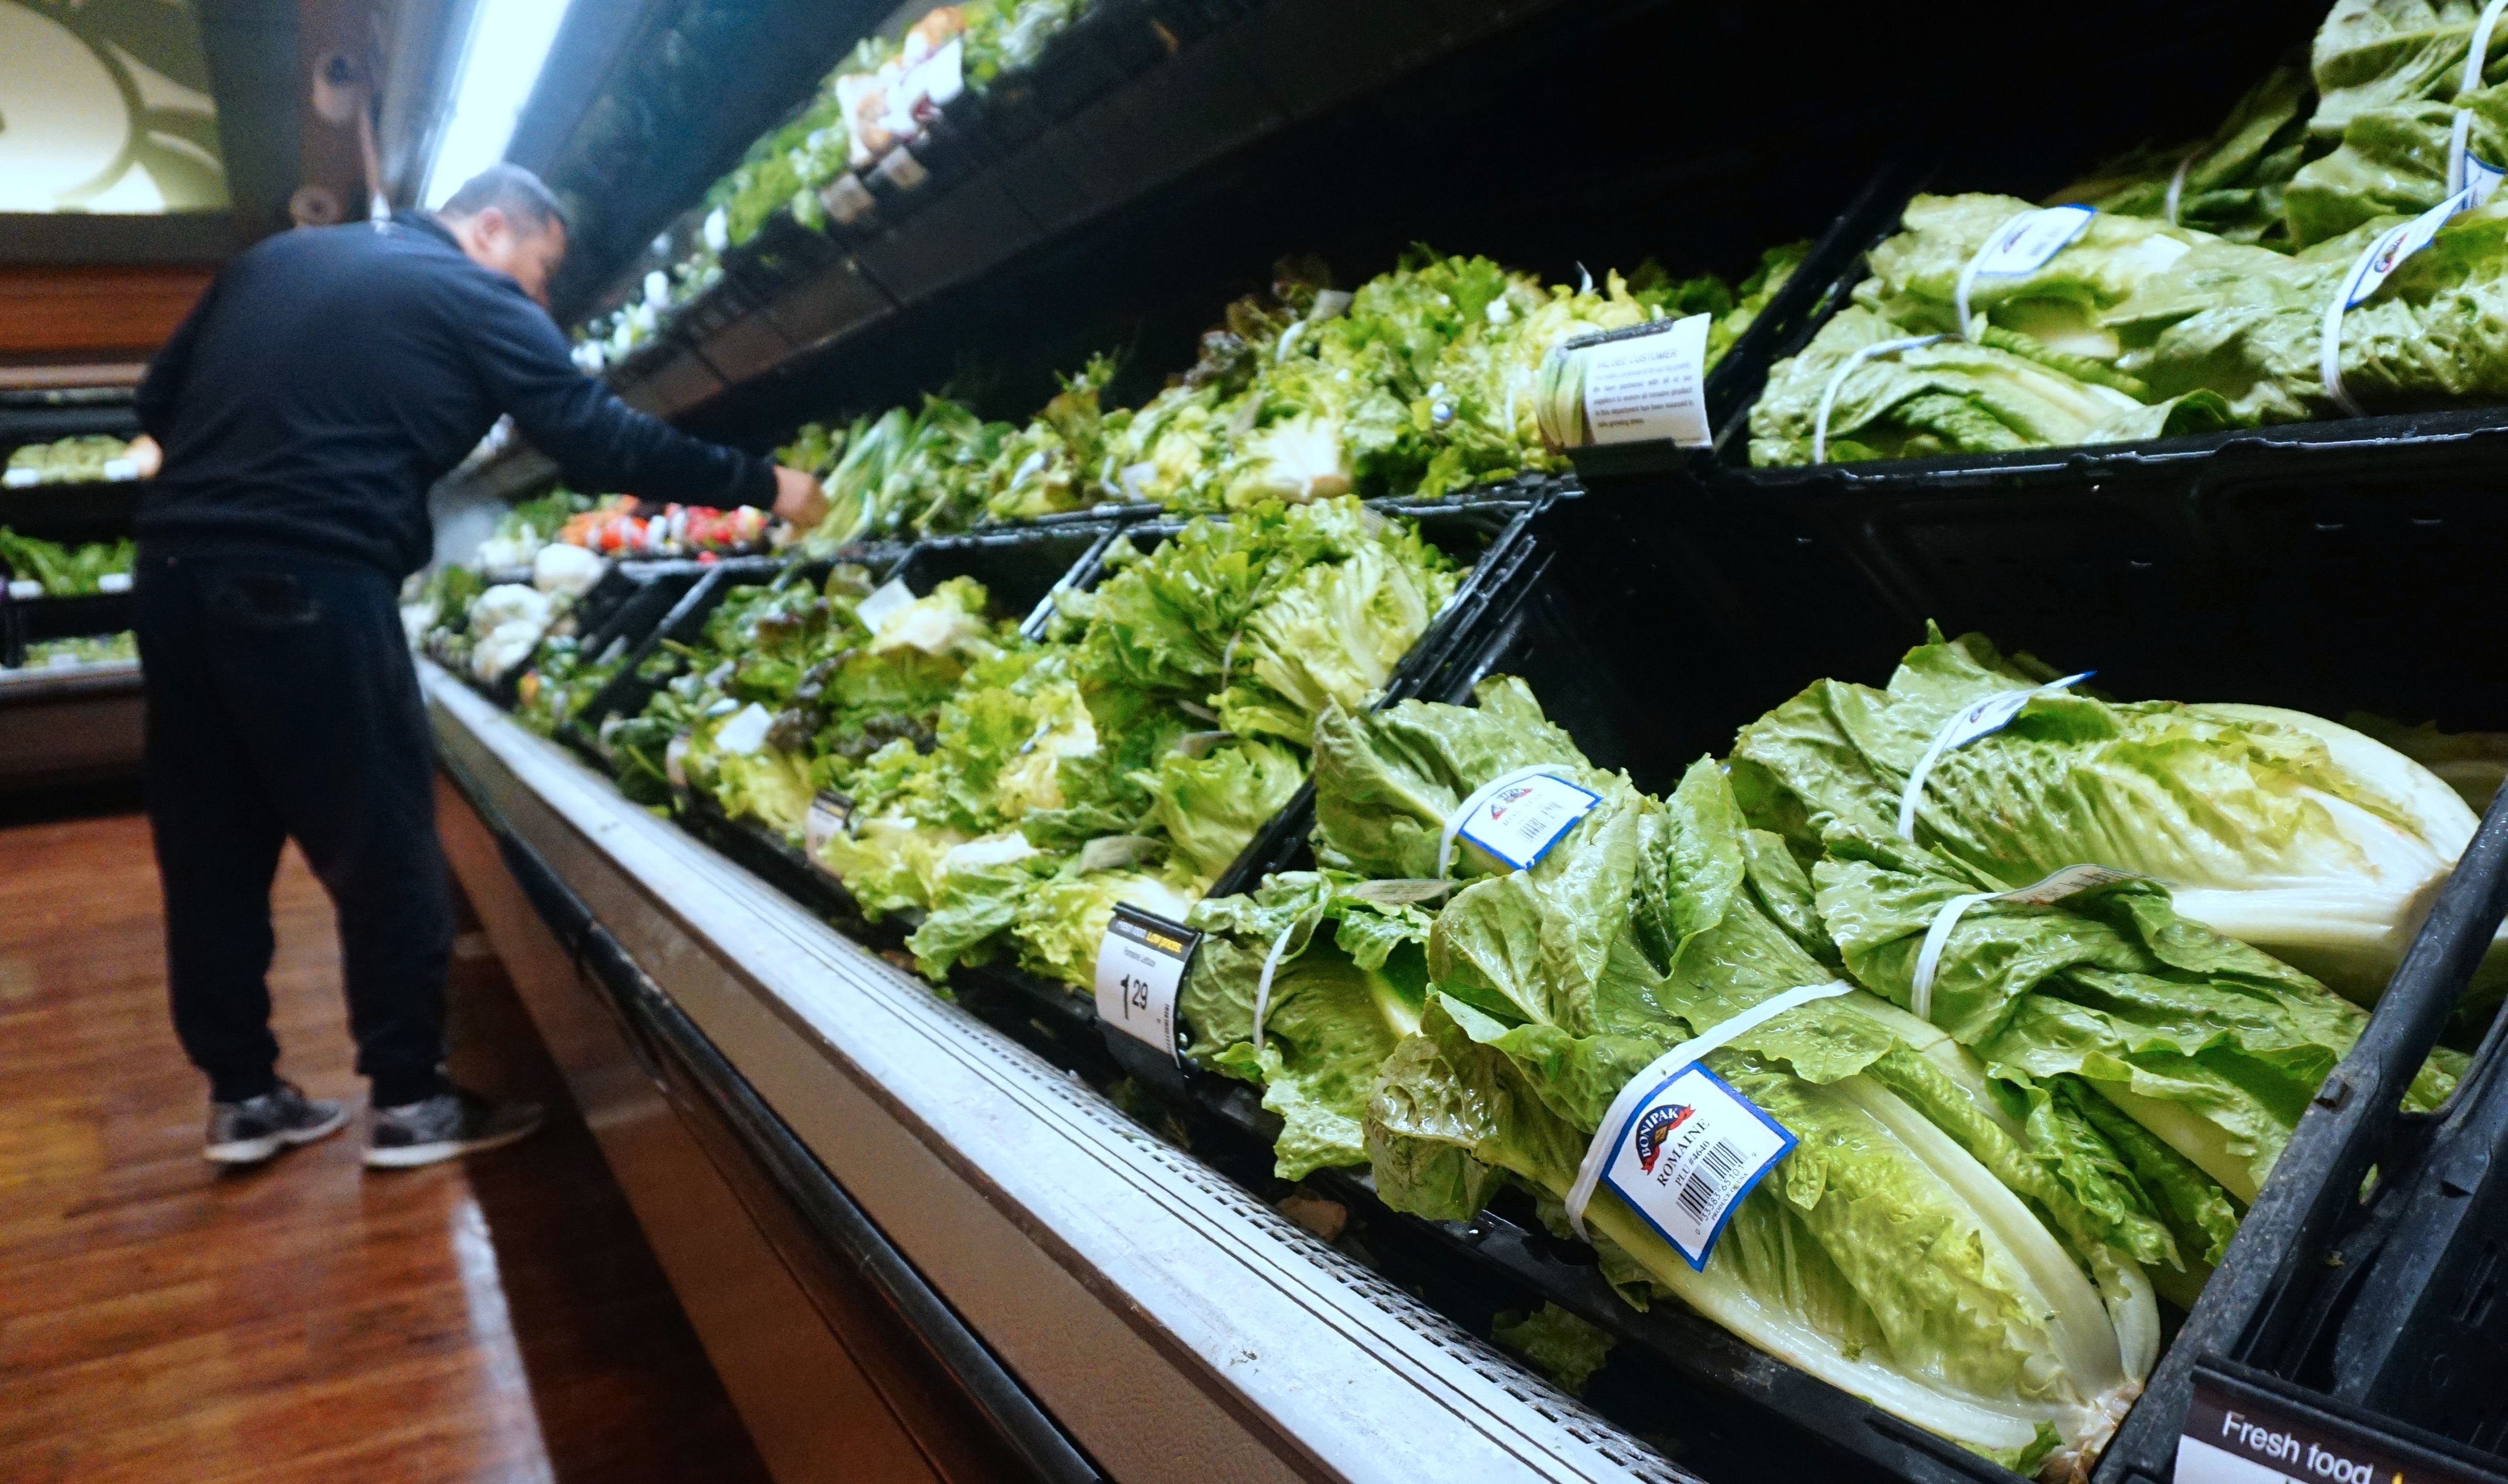 Citing E. coli outbreak, US officials say don't eat romaine